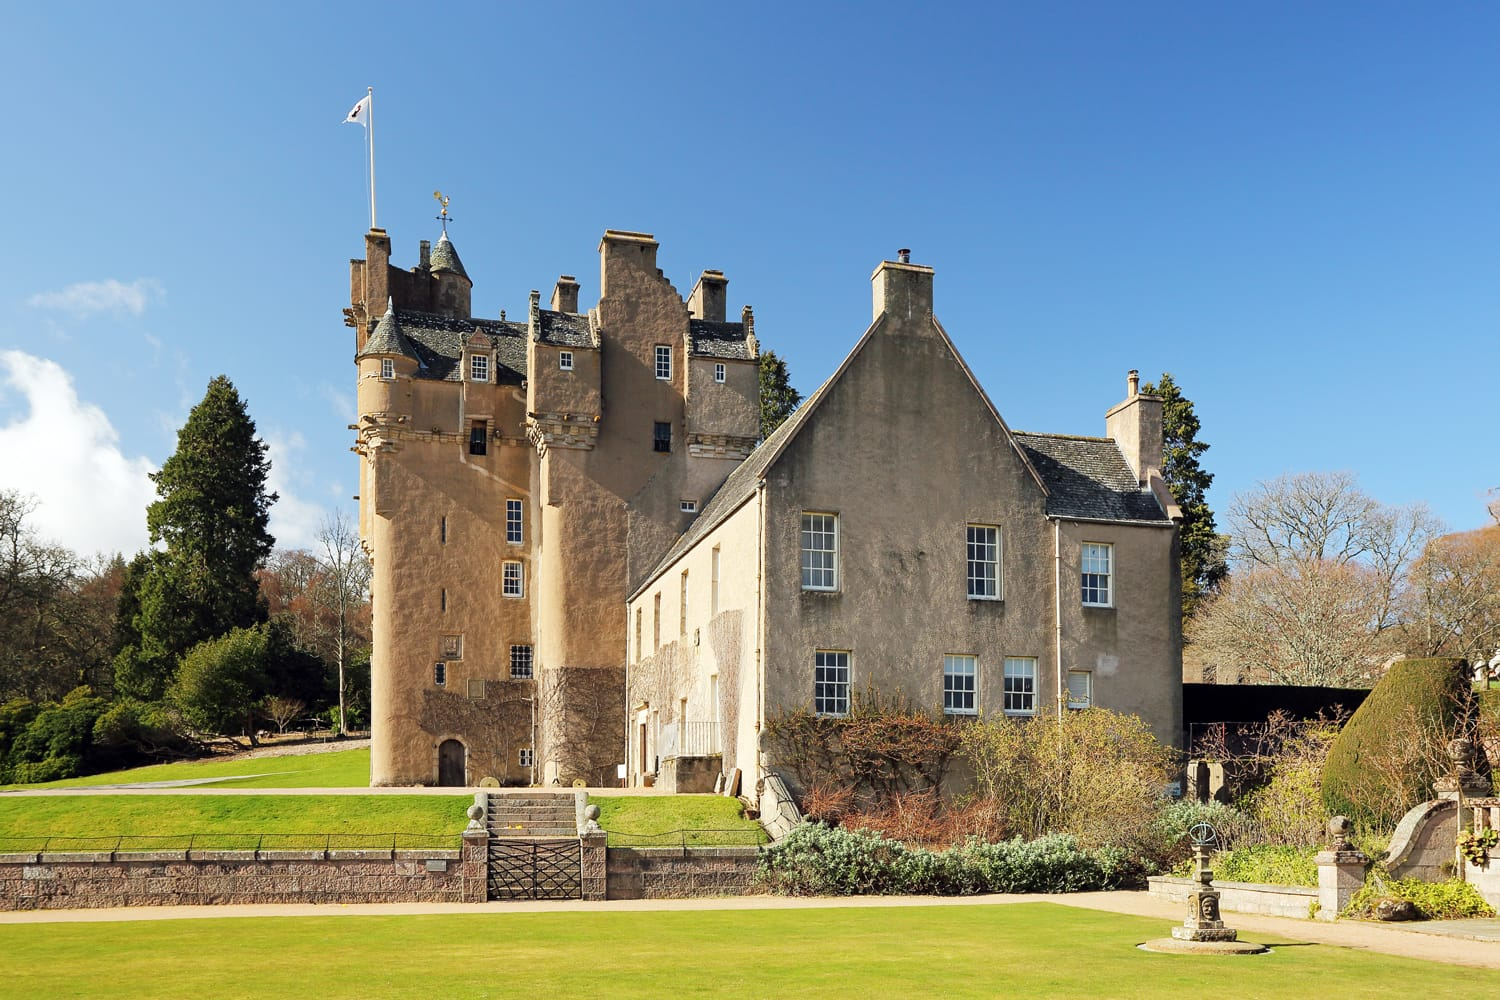 Crathes Castle, a 16th century tower-house situated in Aberdeenshire Scotland